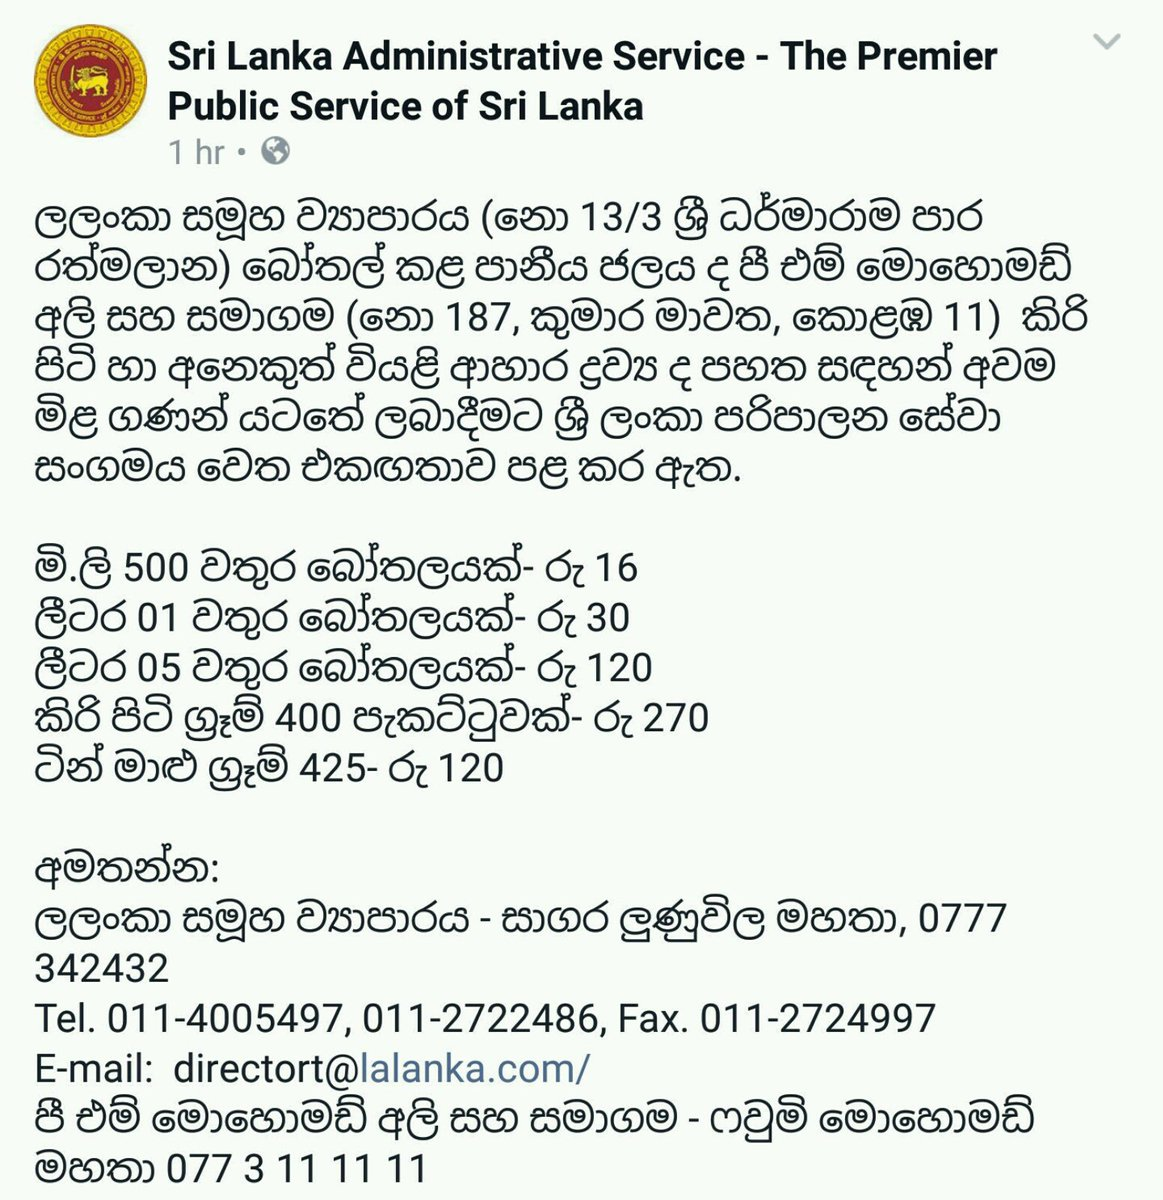 Hope this will be useful for those looking to buy these items in bulk, for donations: #lka #floodSL https://t.co/GXKIsFPi2N